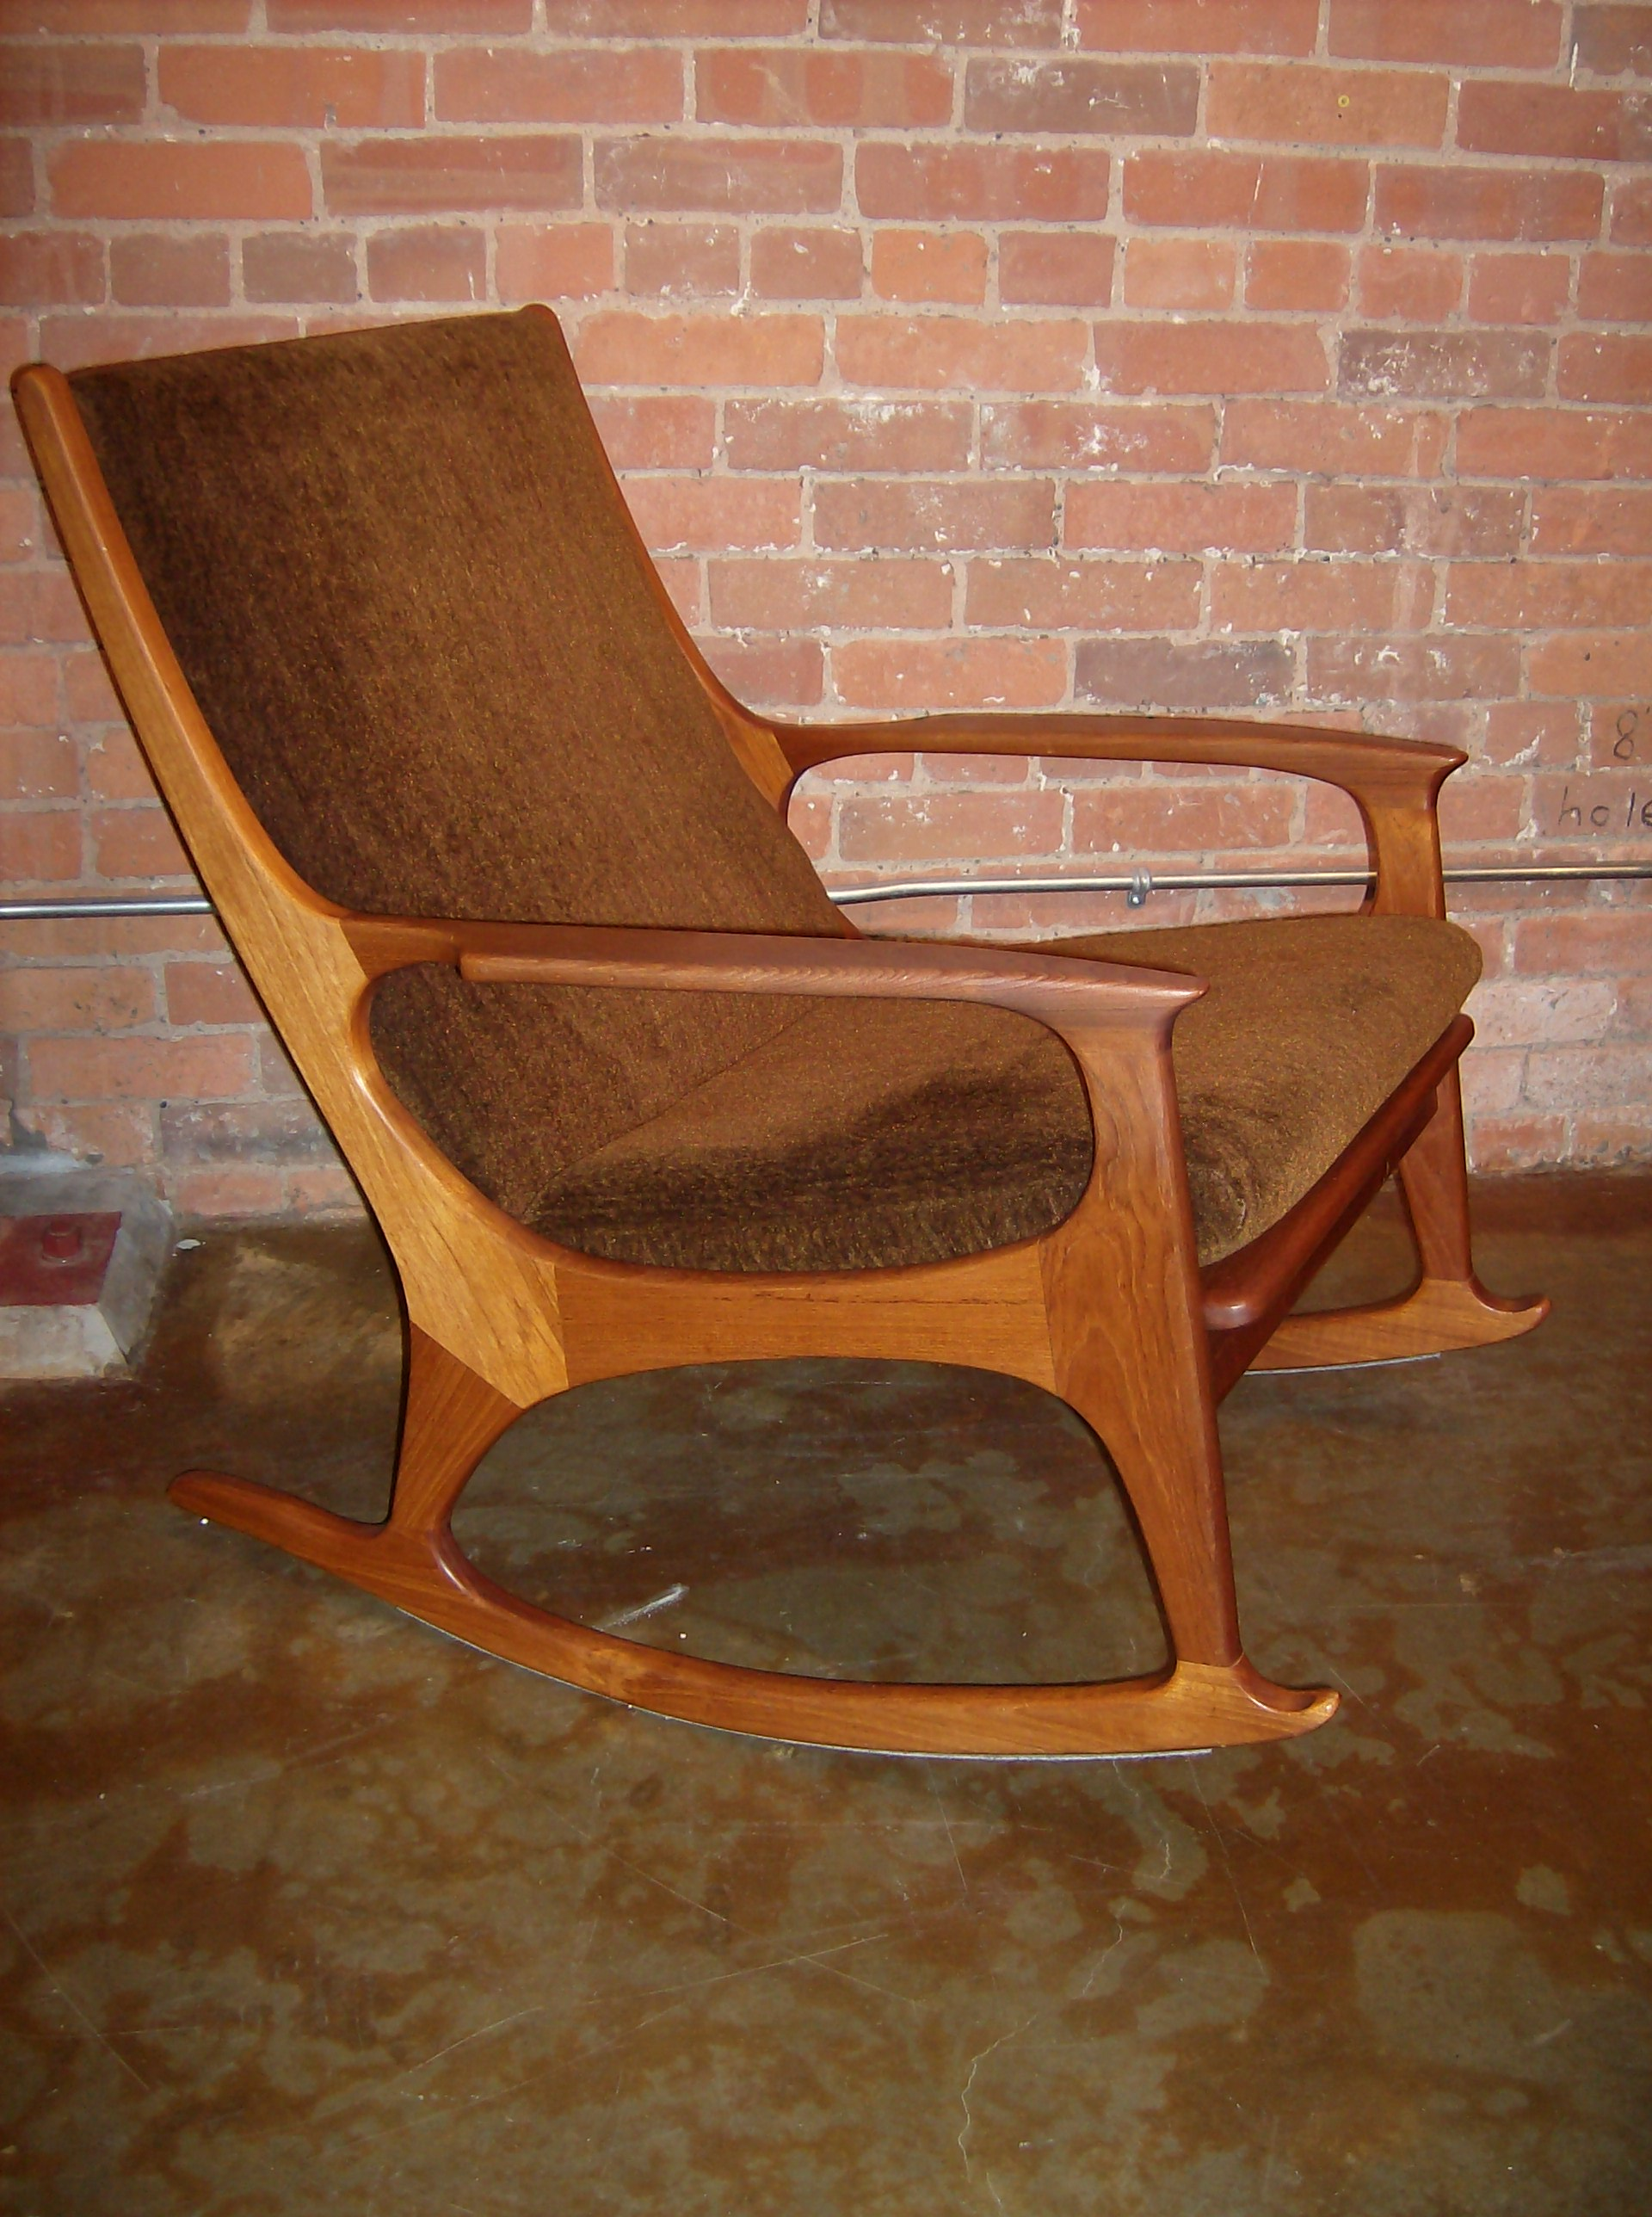 Garden Furniture Victoria Bc the fabulous find | mid century modern furniture showroom in